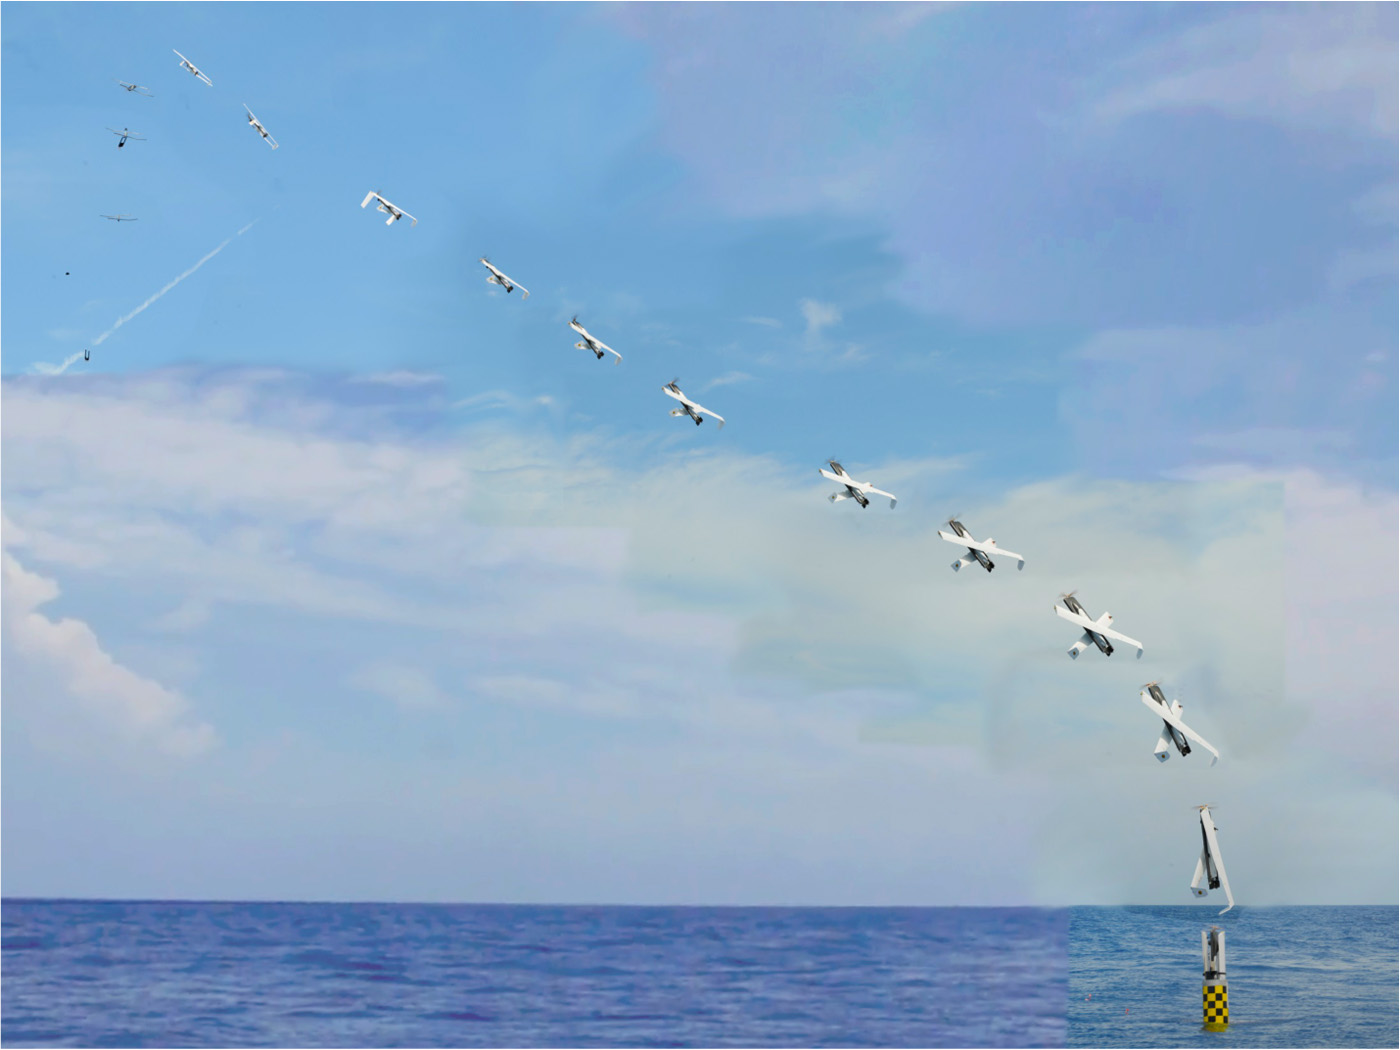 NRL's XFC Sea Robin demonstration in August 2013. US Navy Photo